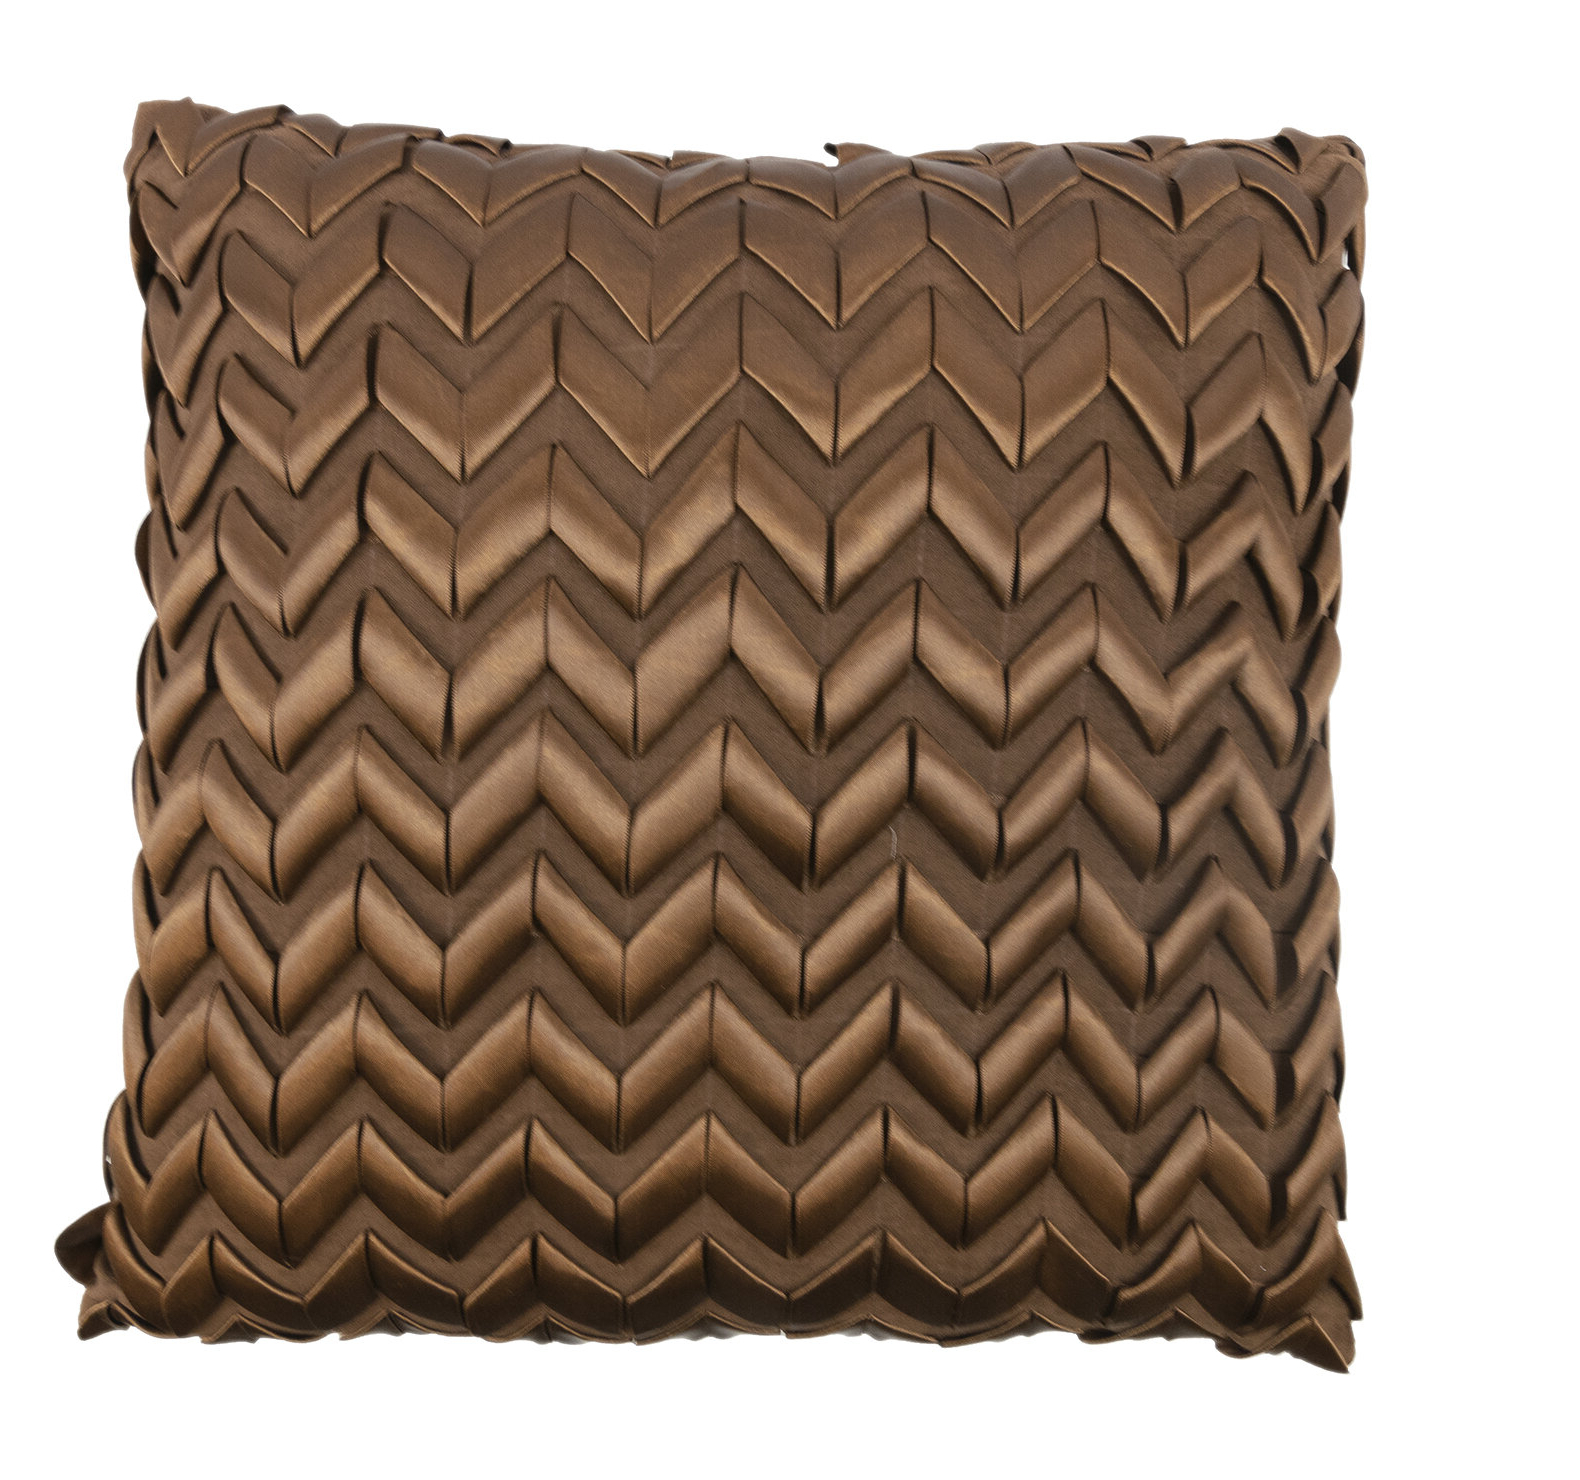 Salvato Decorative Ribbon Throw Pillow Regarding Best And Newest Salvato Sofas With Cushion (View 12 of 25)